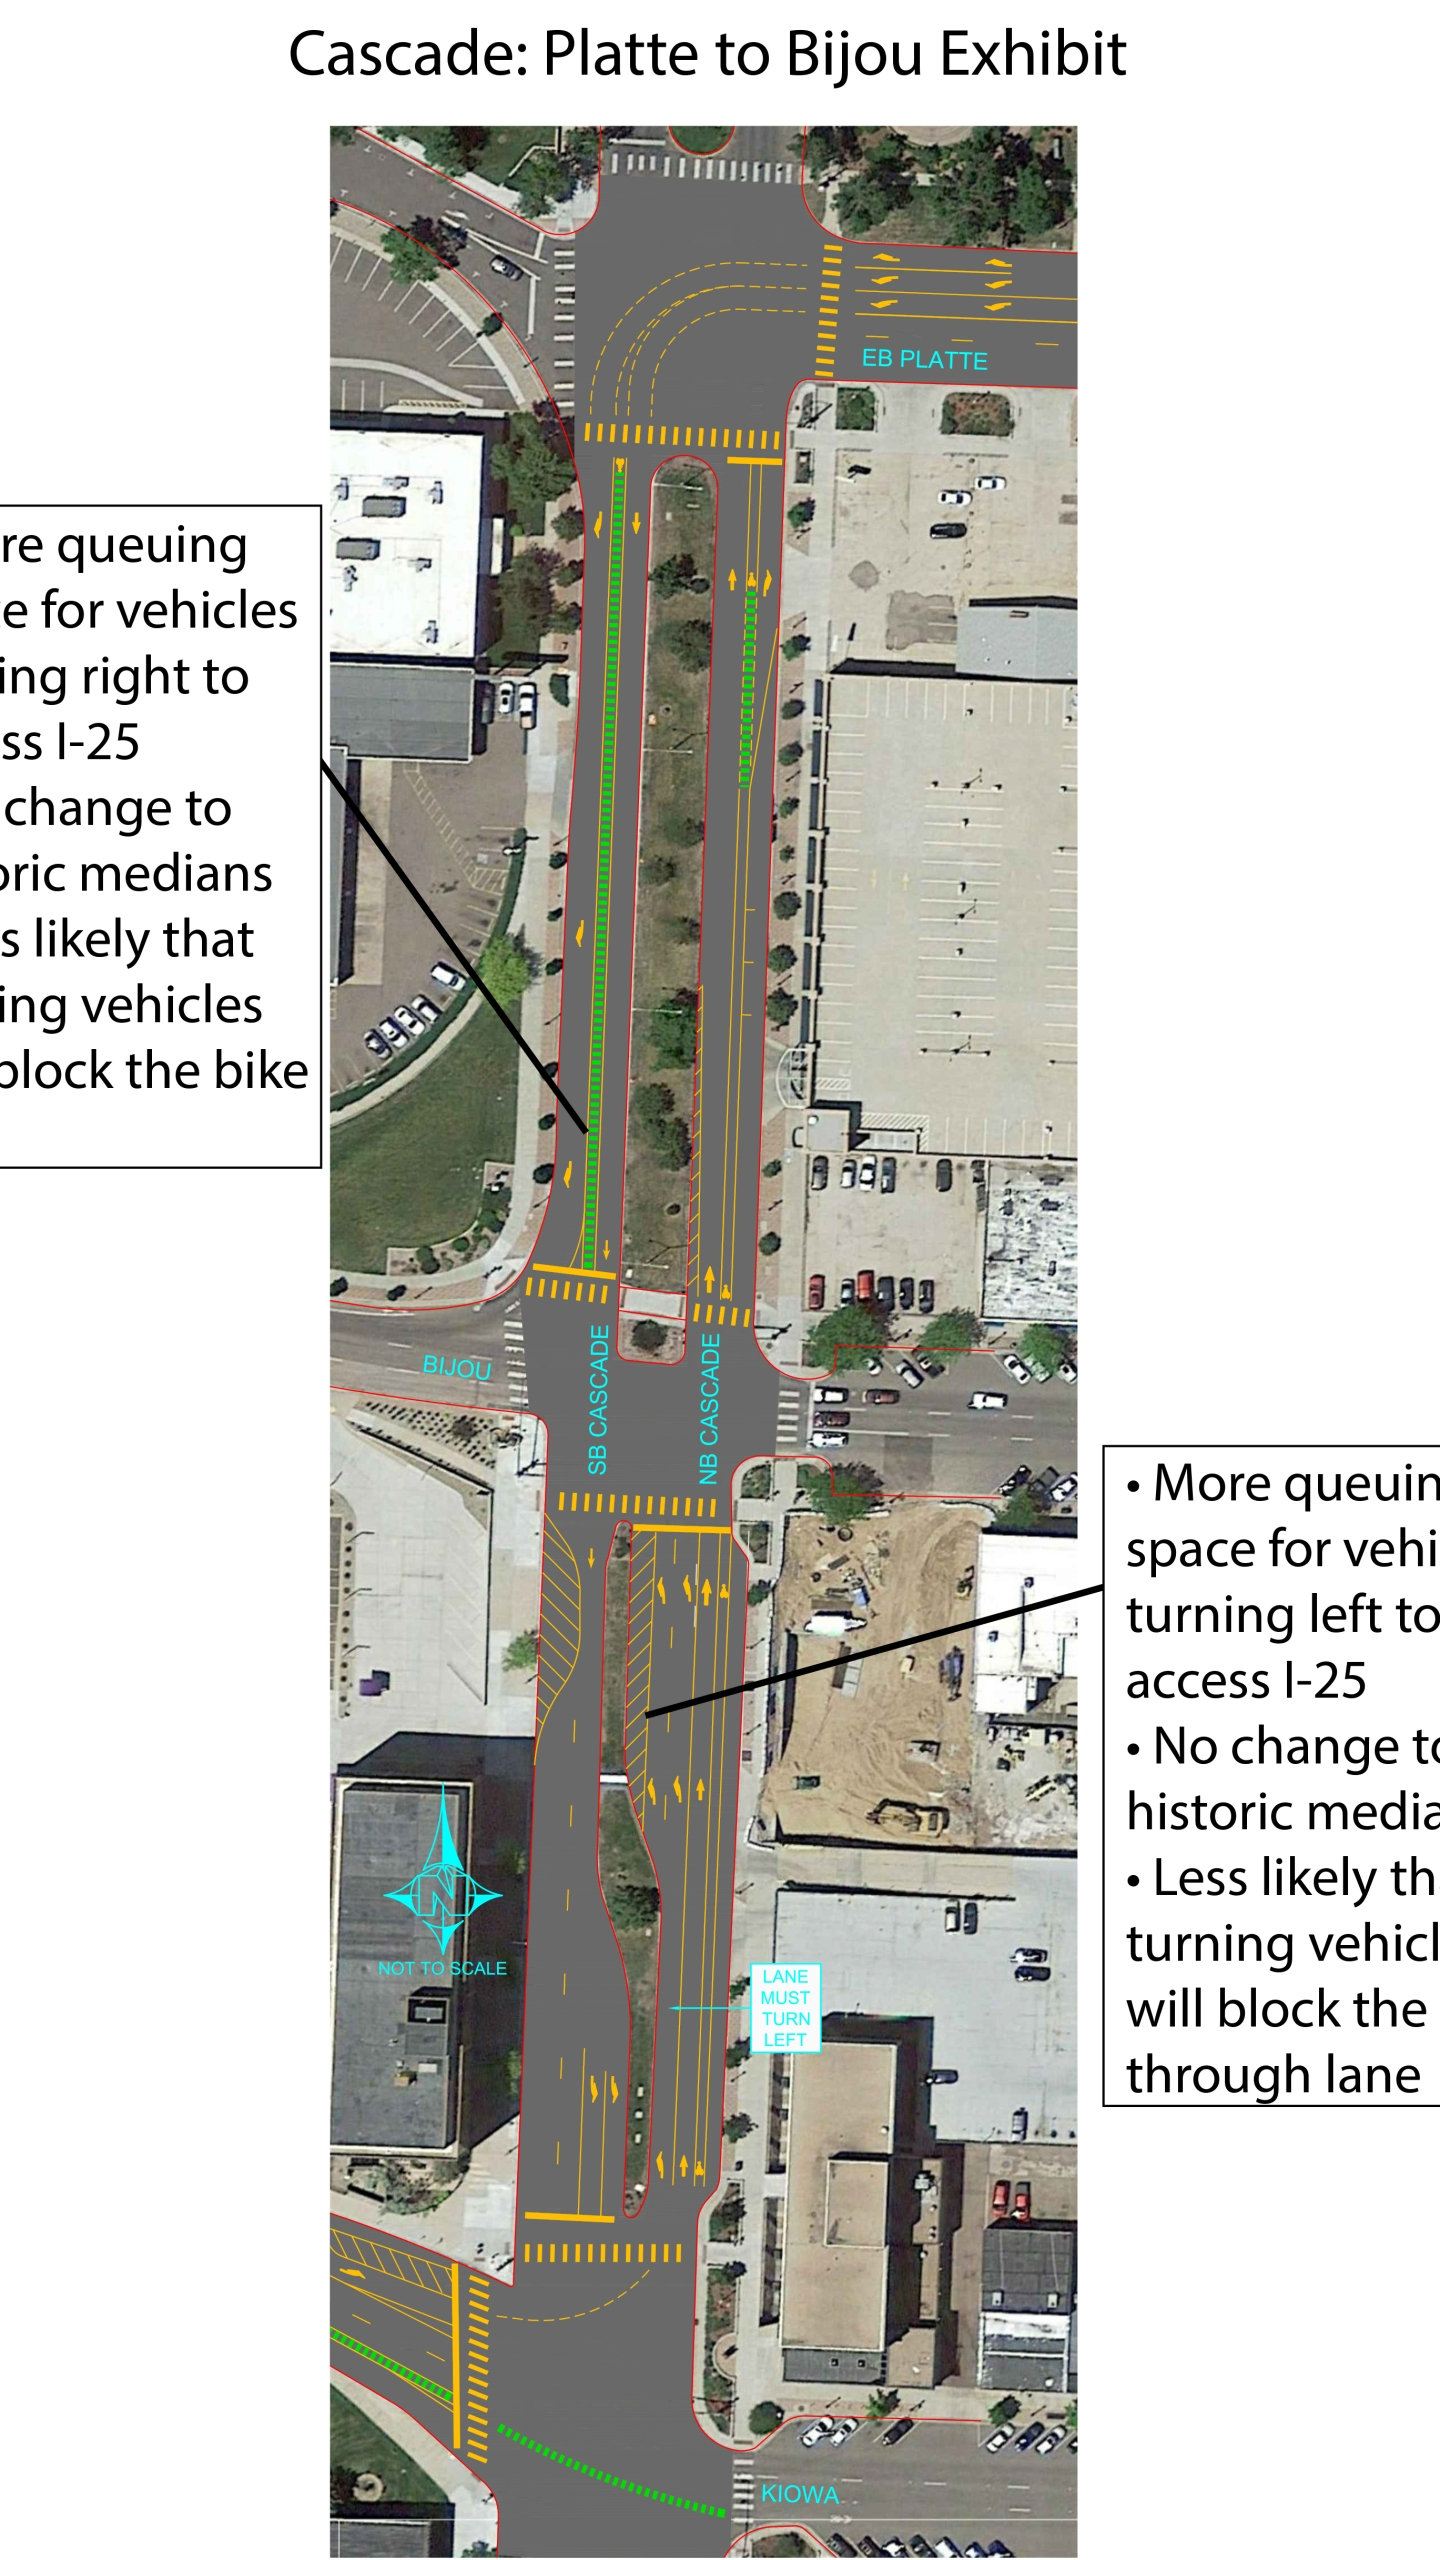 Map shows the new traffic configuration on Cascade Avenue between Platte Avenue and Bijou Street. City of Colorado Springs